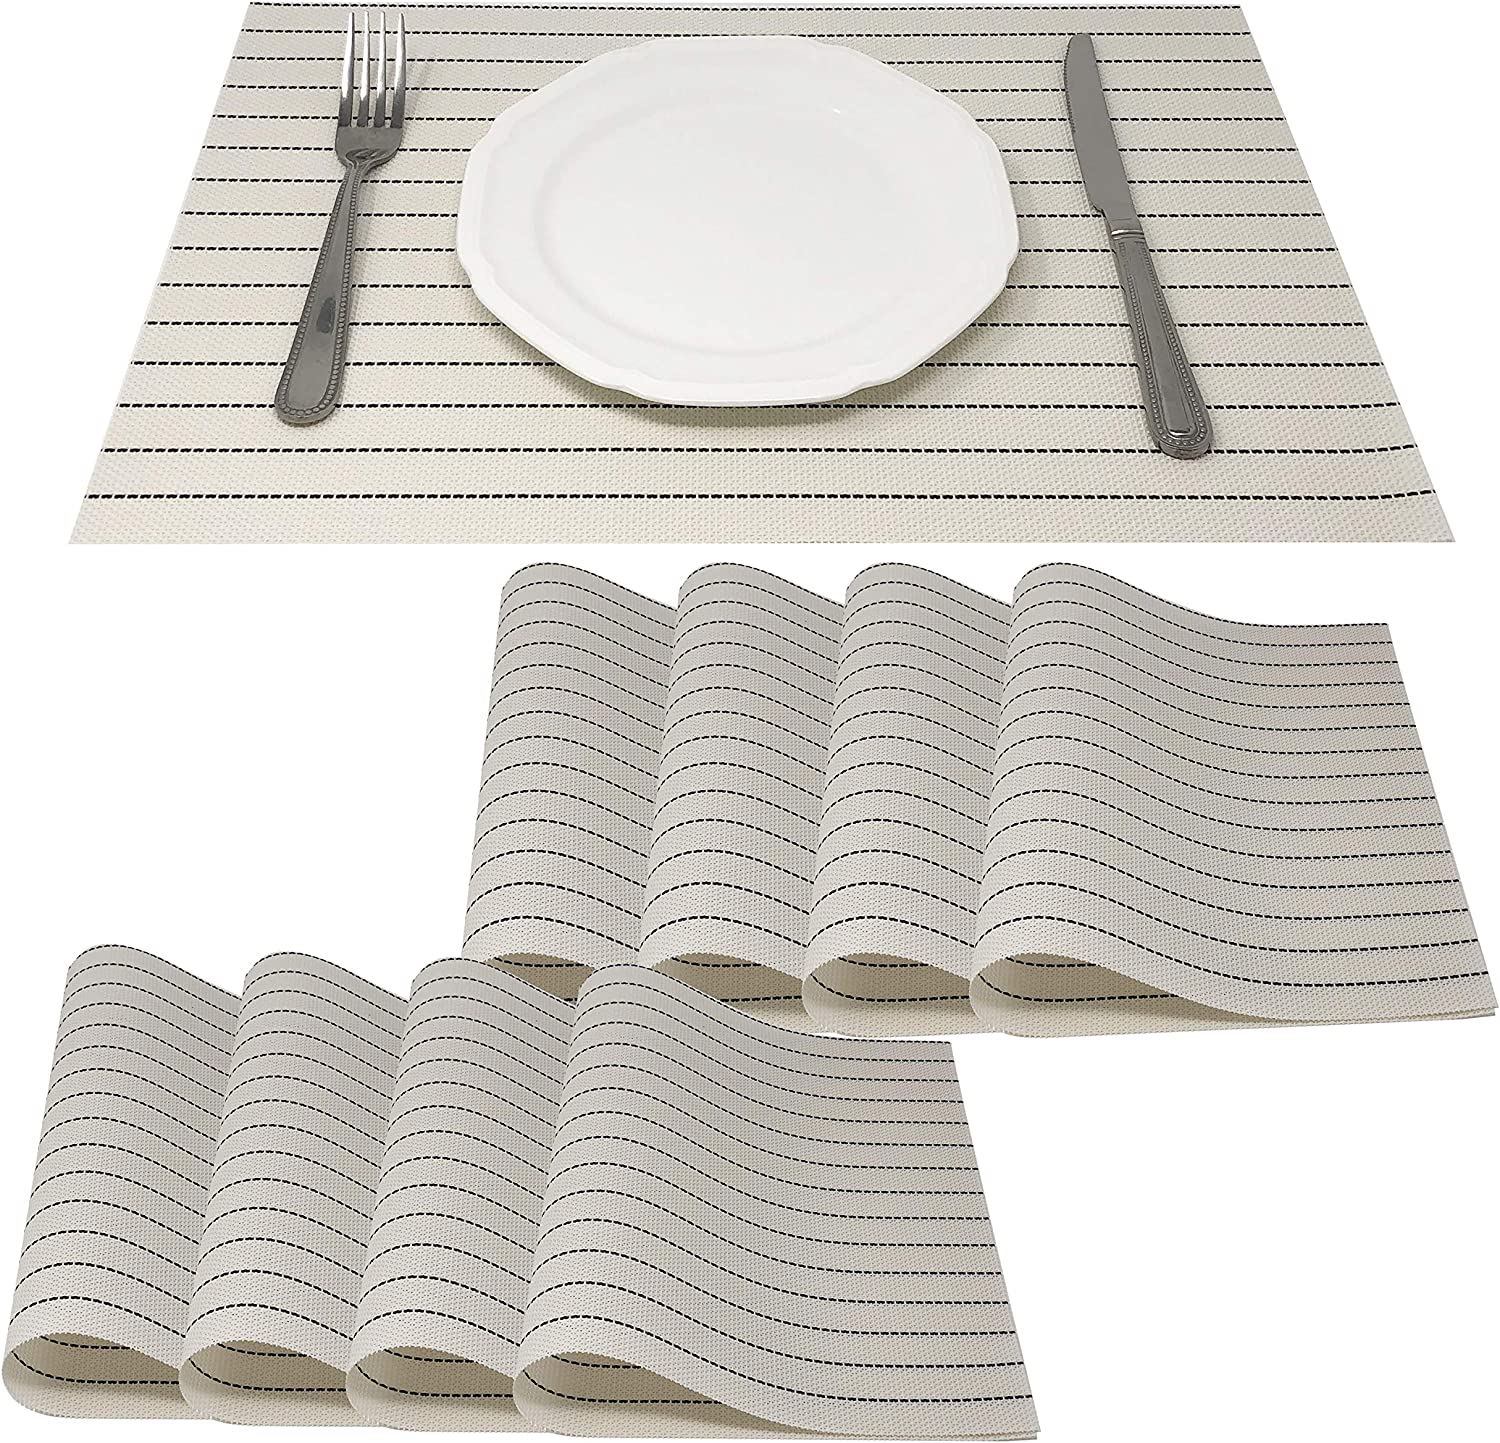 Amazon Com Allgala 8 Pack Dining Table Pvc Placemat Set Protect Table From Heat Stain Scratch And Anti Skid Style Black Stripe On White Hd80204 Home Kitchen